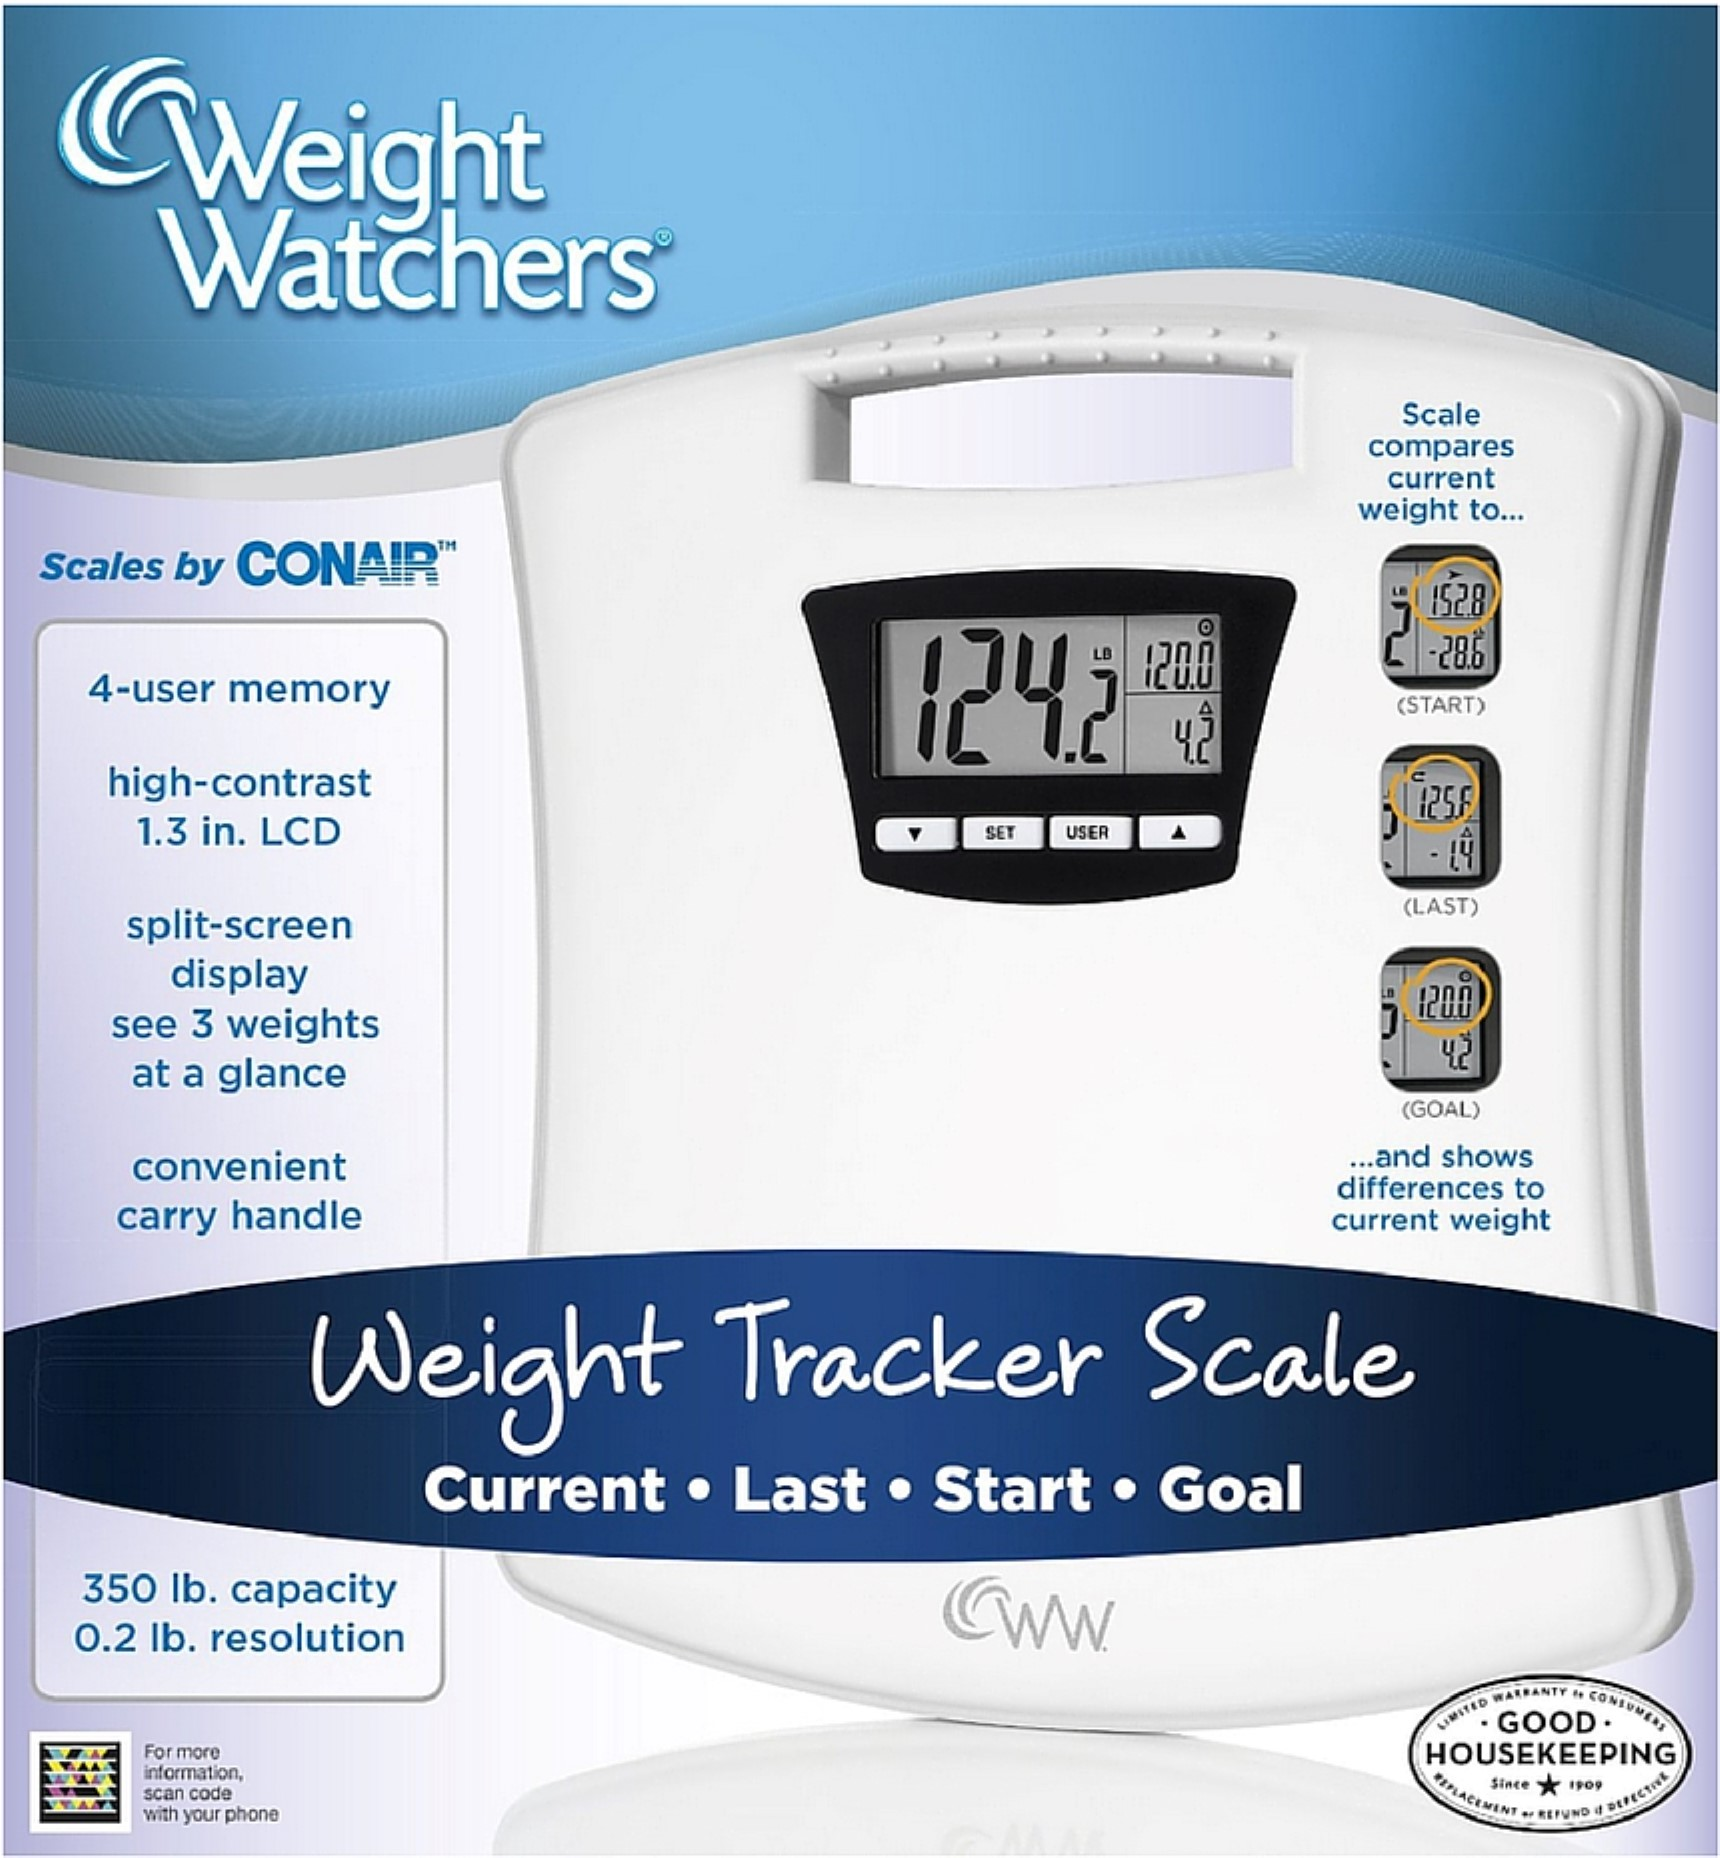 Weight Watchers Weight Tracker Scale 1 ea (Pack of 4)